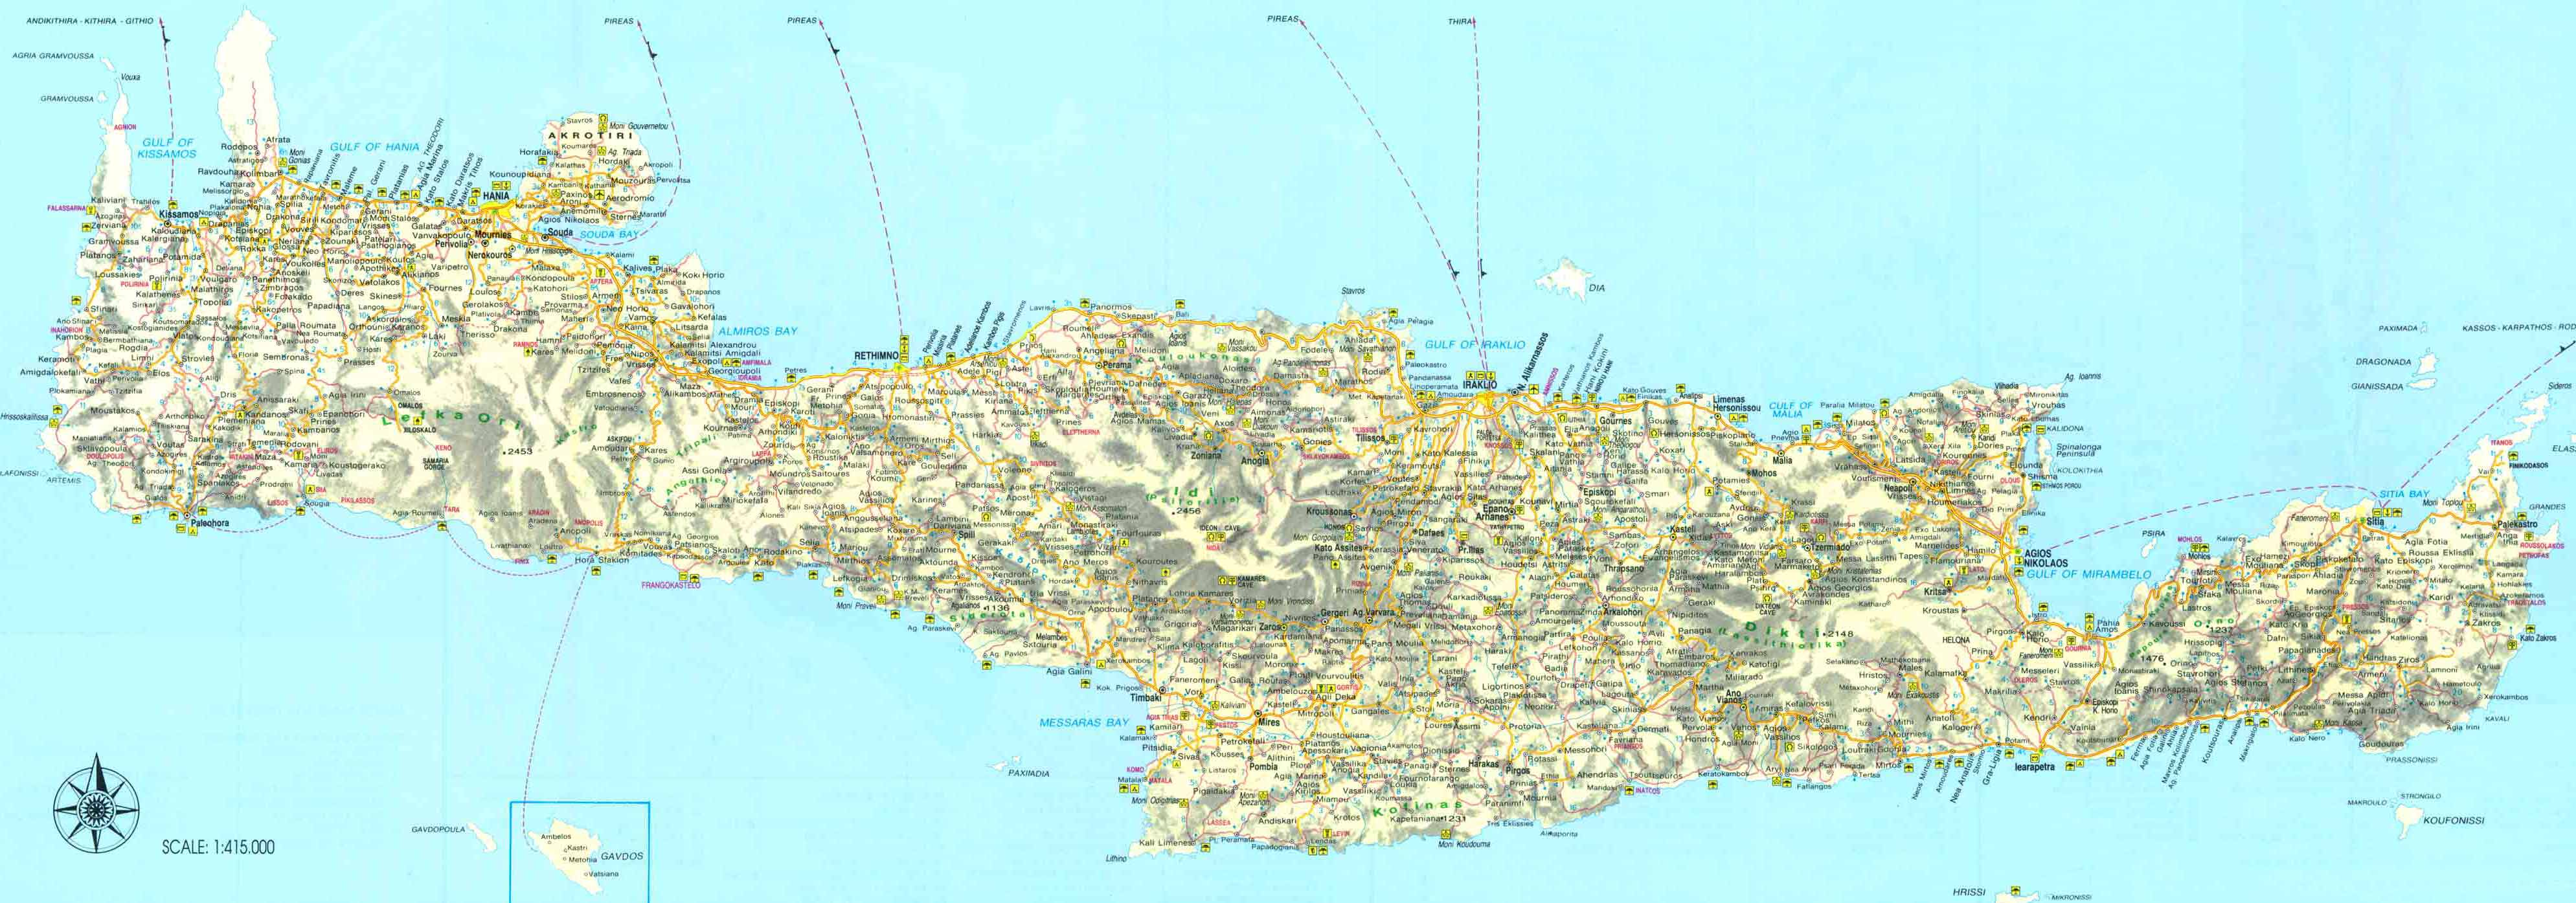 Map of Crete - Click to enlarge